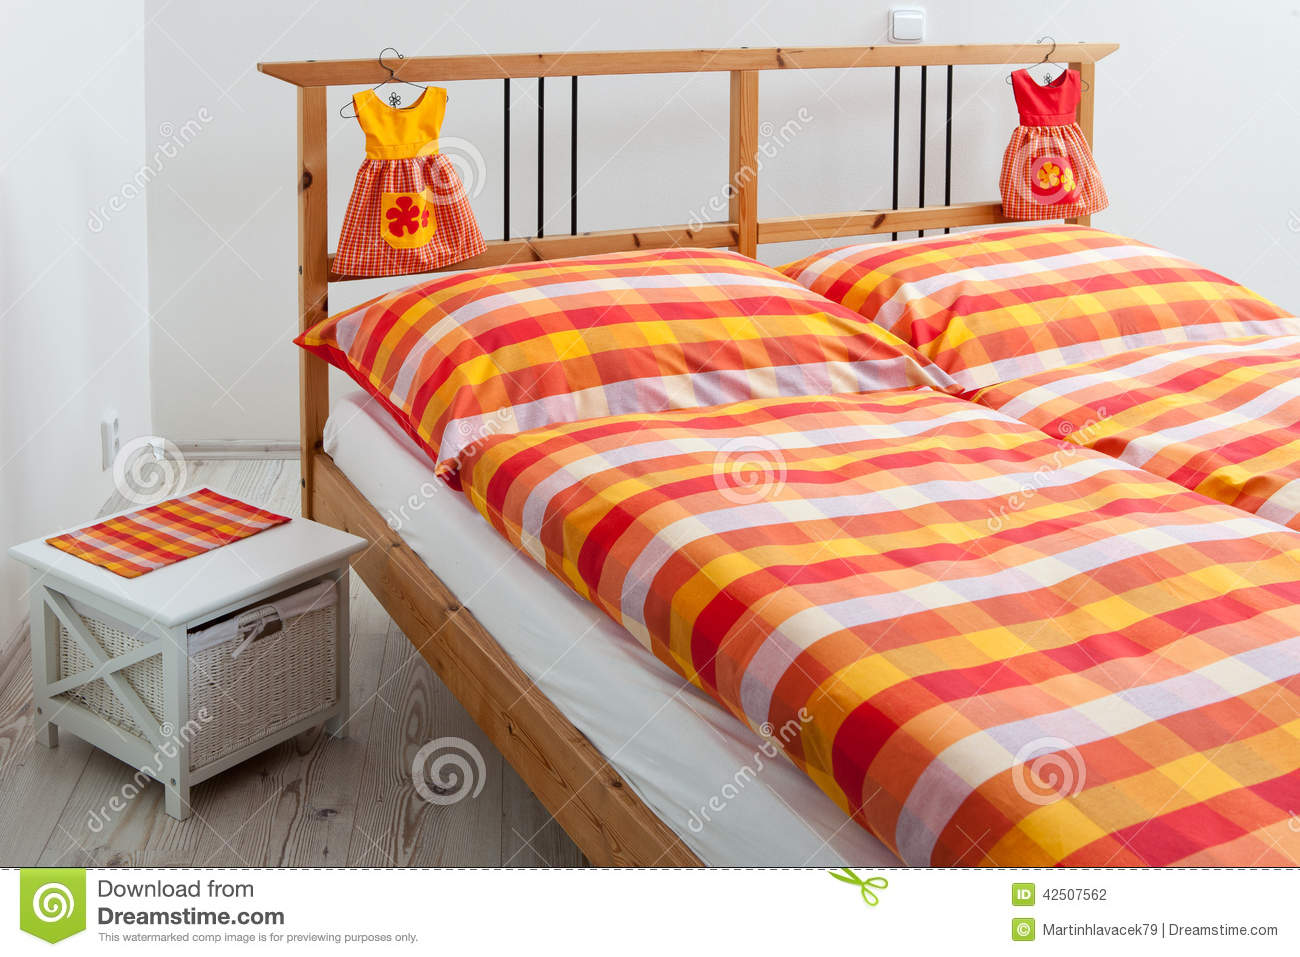 Checkered Bedding In Interior Of Bedroom Stock Photo